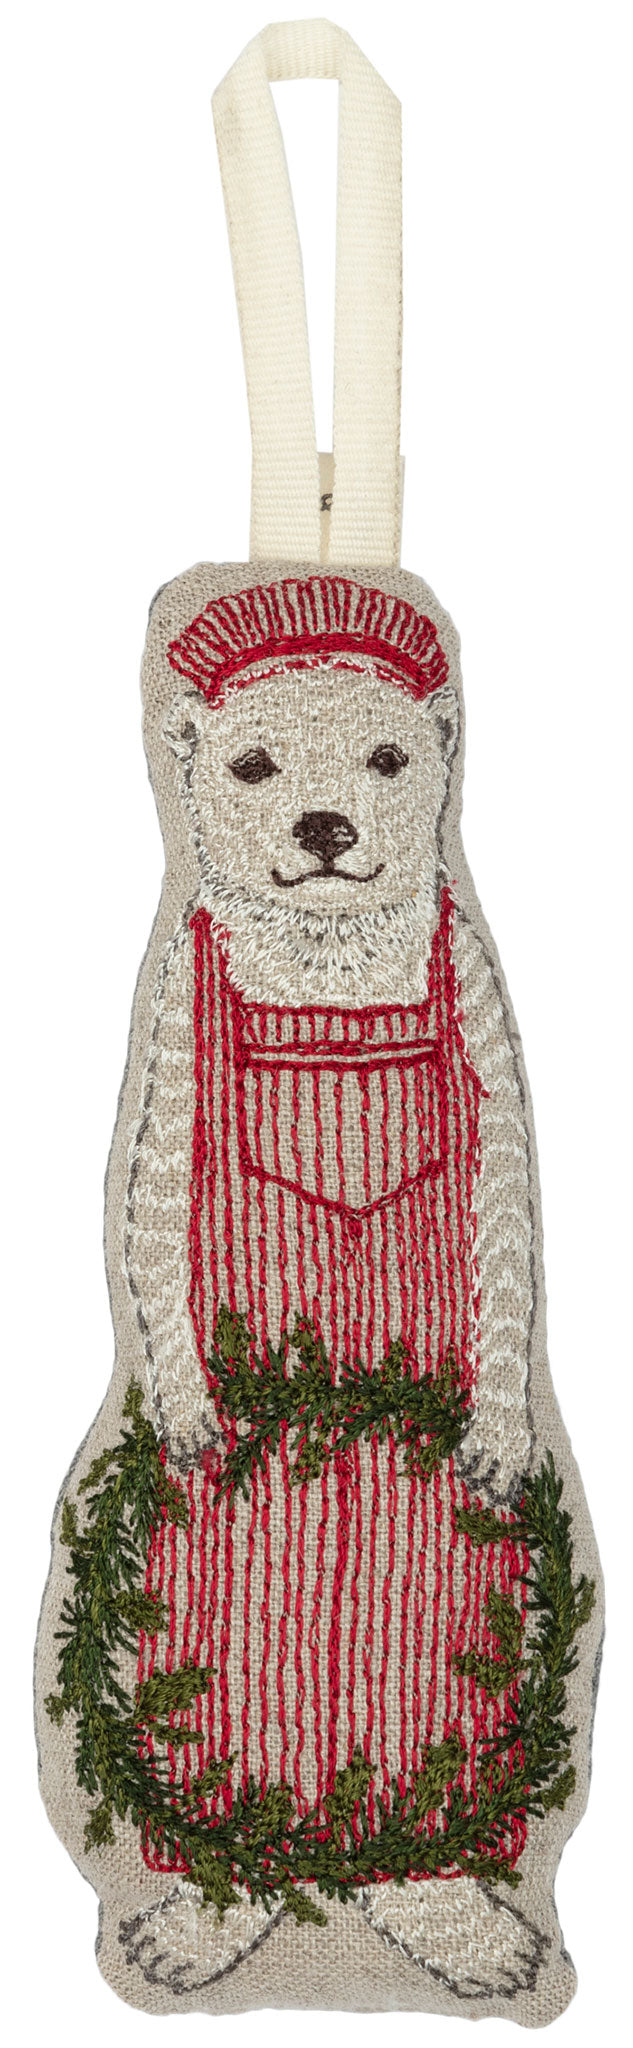 Embroidered and stuffed ornament depicting train conductor polar bear with red striped overalls and cap holding Christmas wreath.